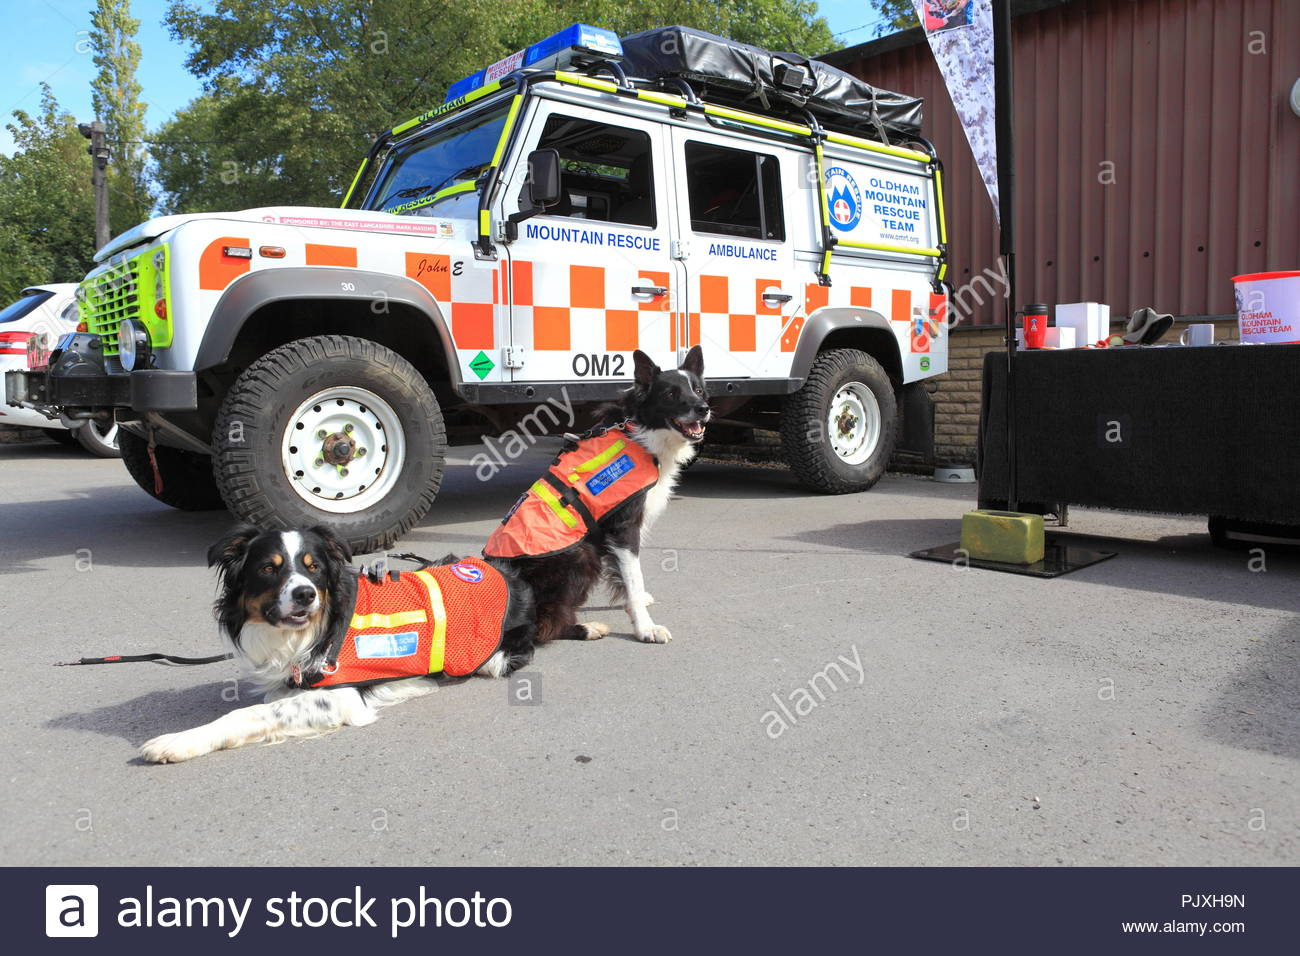 The Oldham Mountain & Rescue Team fundraising at a local dog show at Greenfield, Oldham Uk. September 2018 - Stock Image